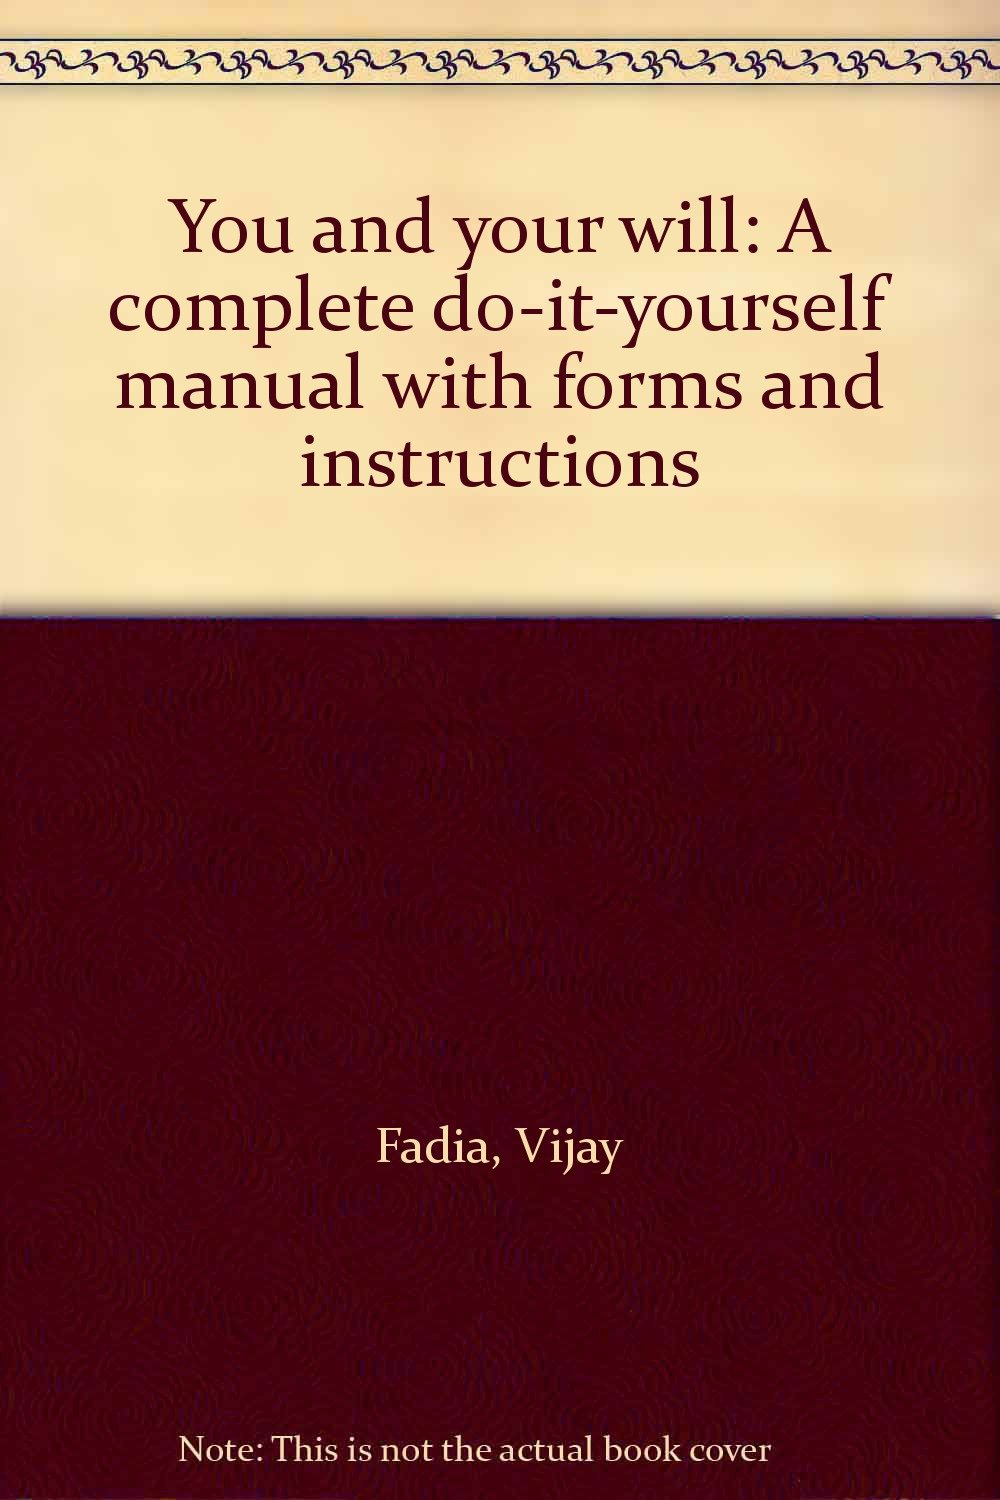 You and your will a complete do it yourself manual with forms and you and your will a complete do it yourself manual with forms and instructions vijay fadia amazon books solutioingenieria Image collections